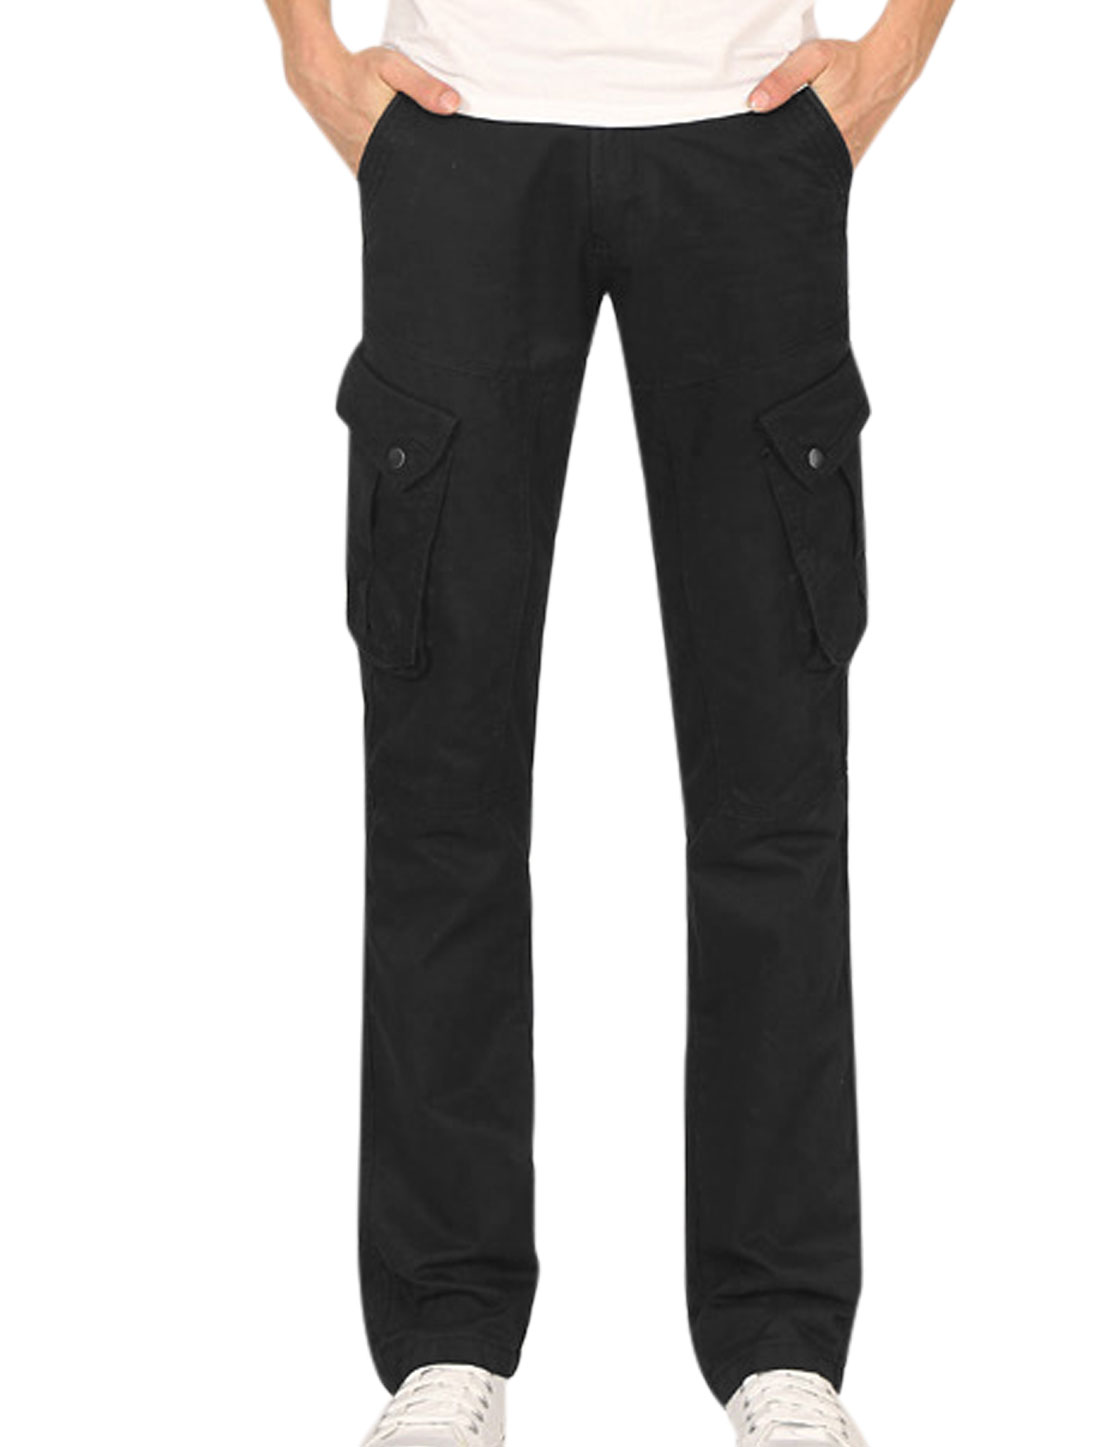 Men Zip Up Button Closed Flap Pocket Design Cargo Pants Black W30